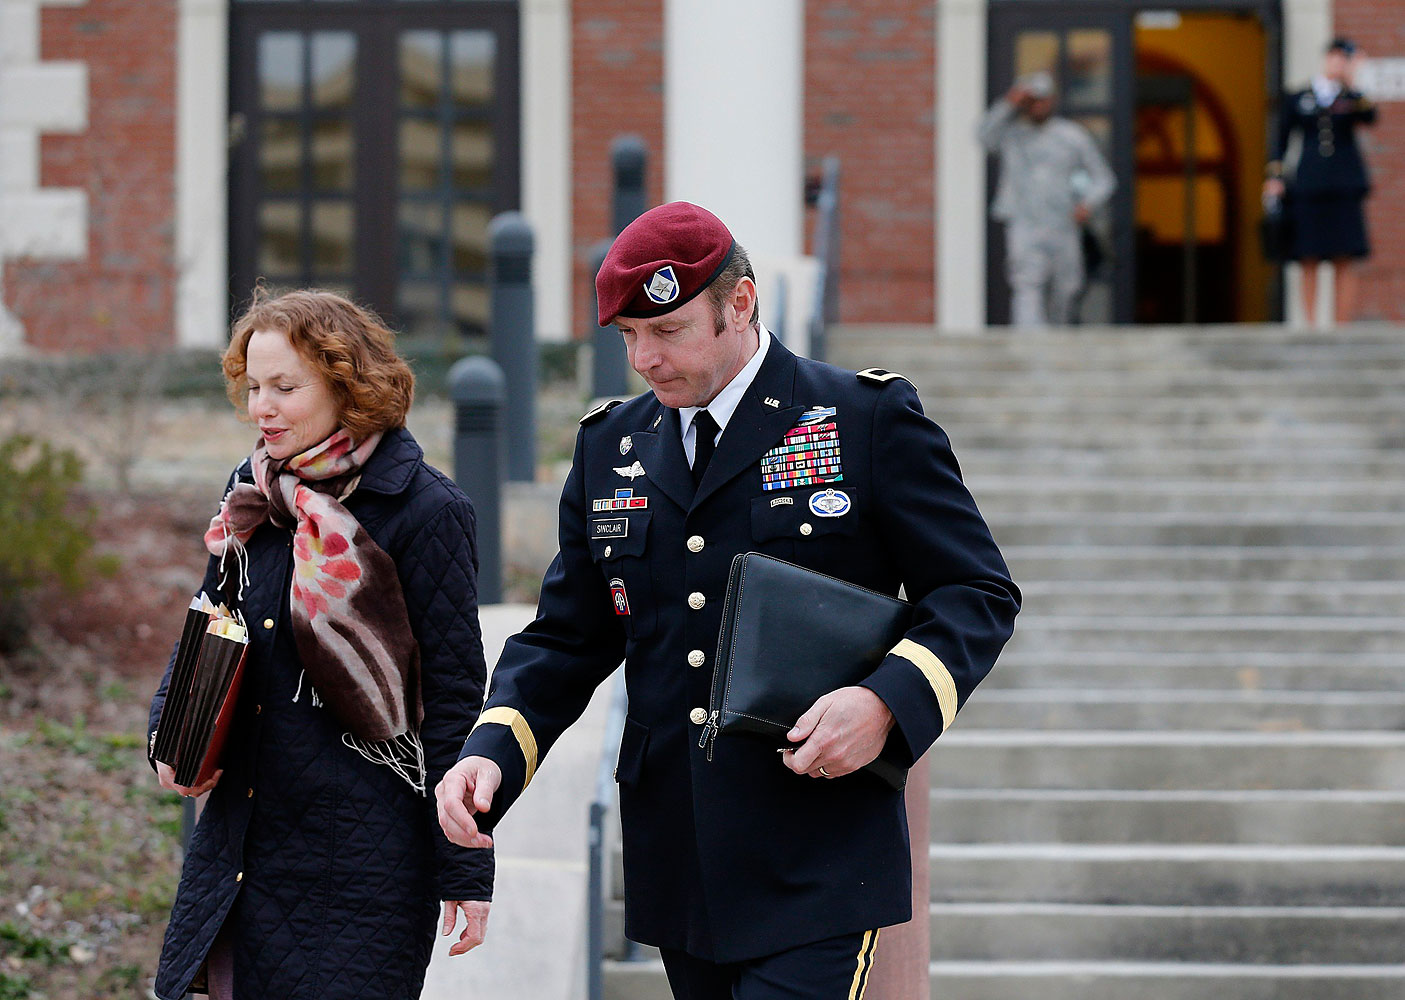 Army Brigadier General Jeffrey Sinclair leaves the courthouse with one of his attorneys at Fort Bragg in Fayetteville, N.C., on March 4, 2014.